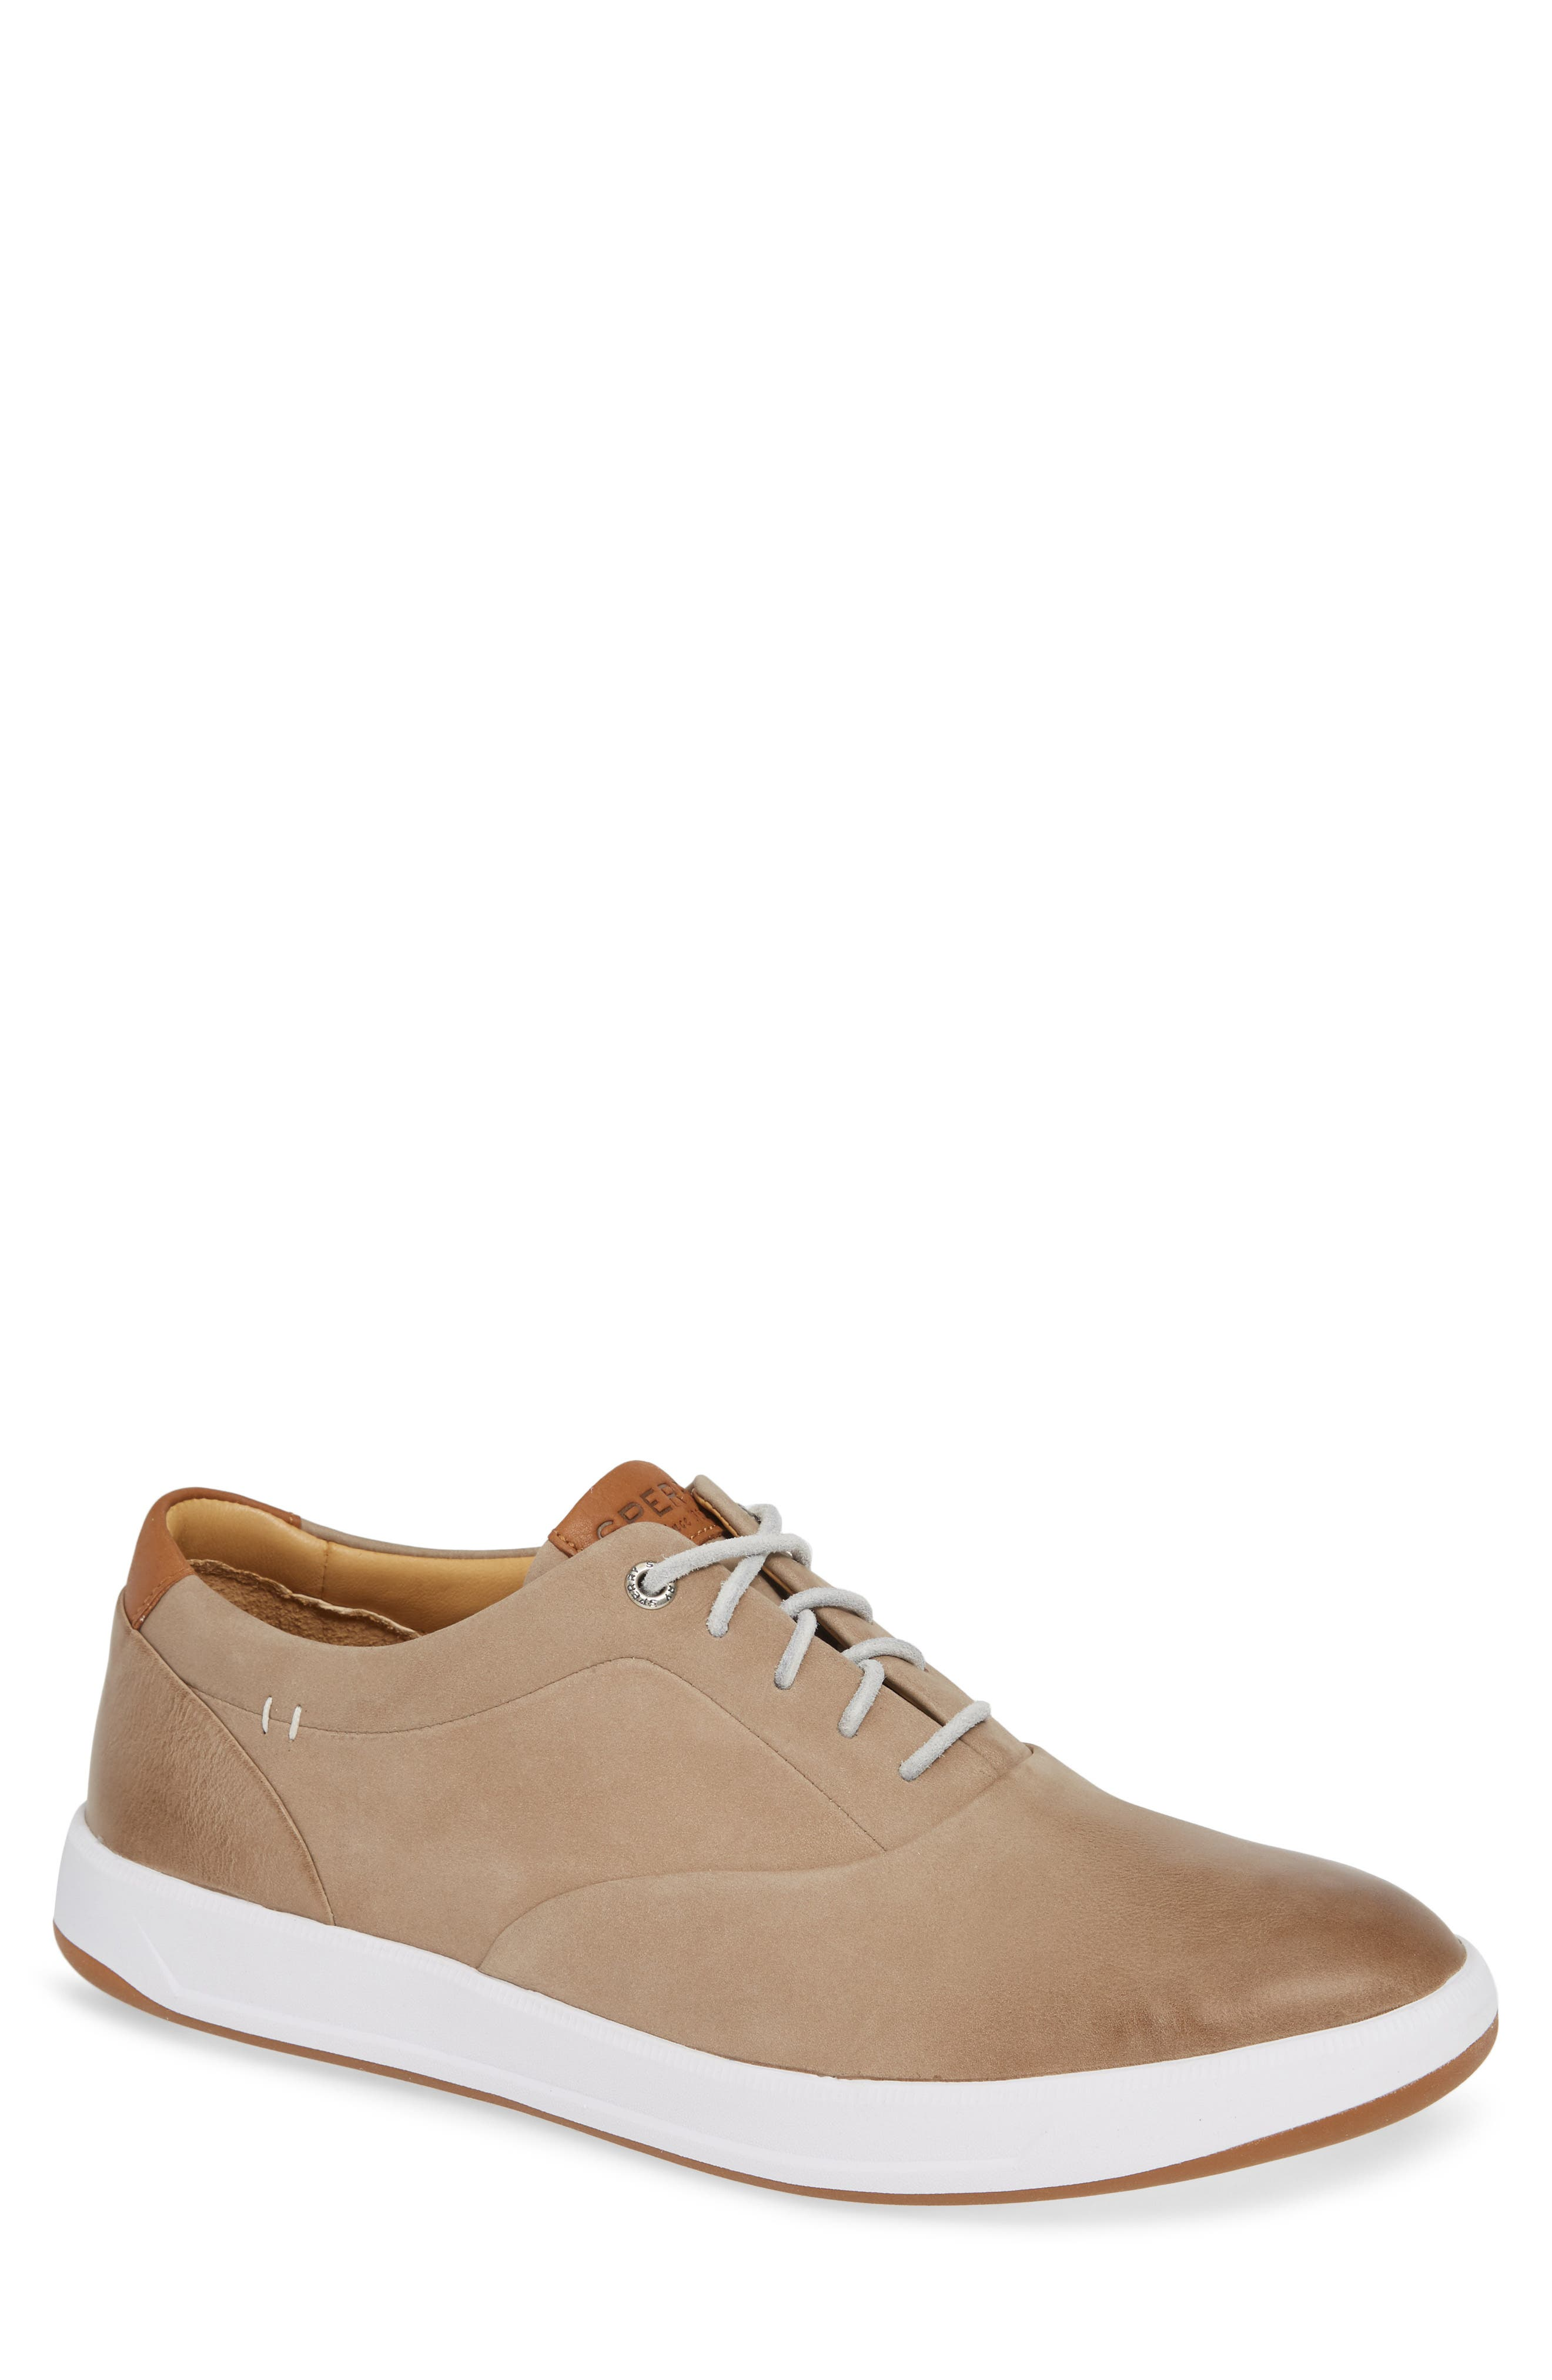 Gold Cup Richfield CVO Sneaker,                         Main,                         color, 250